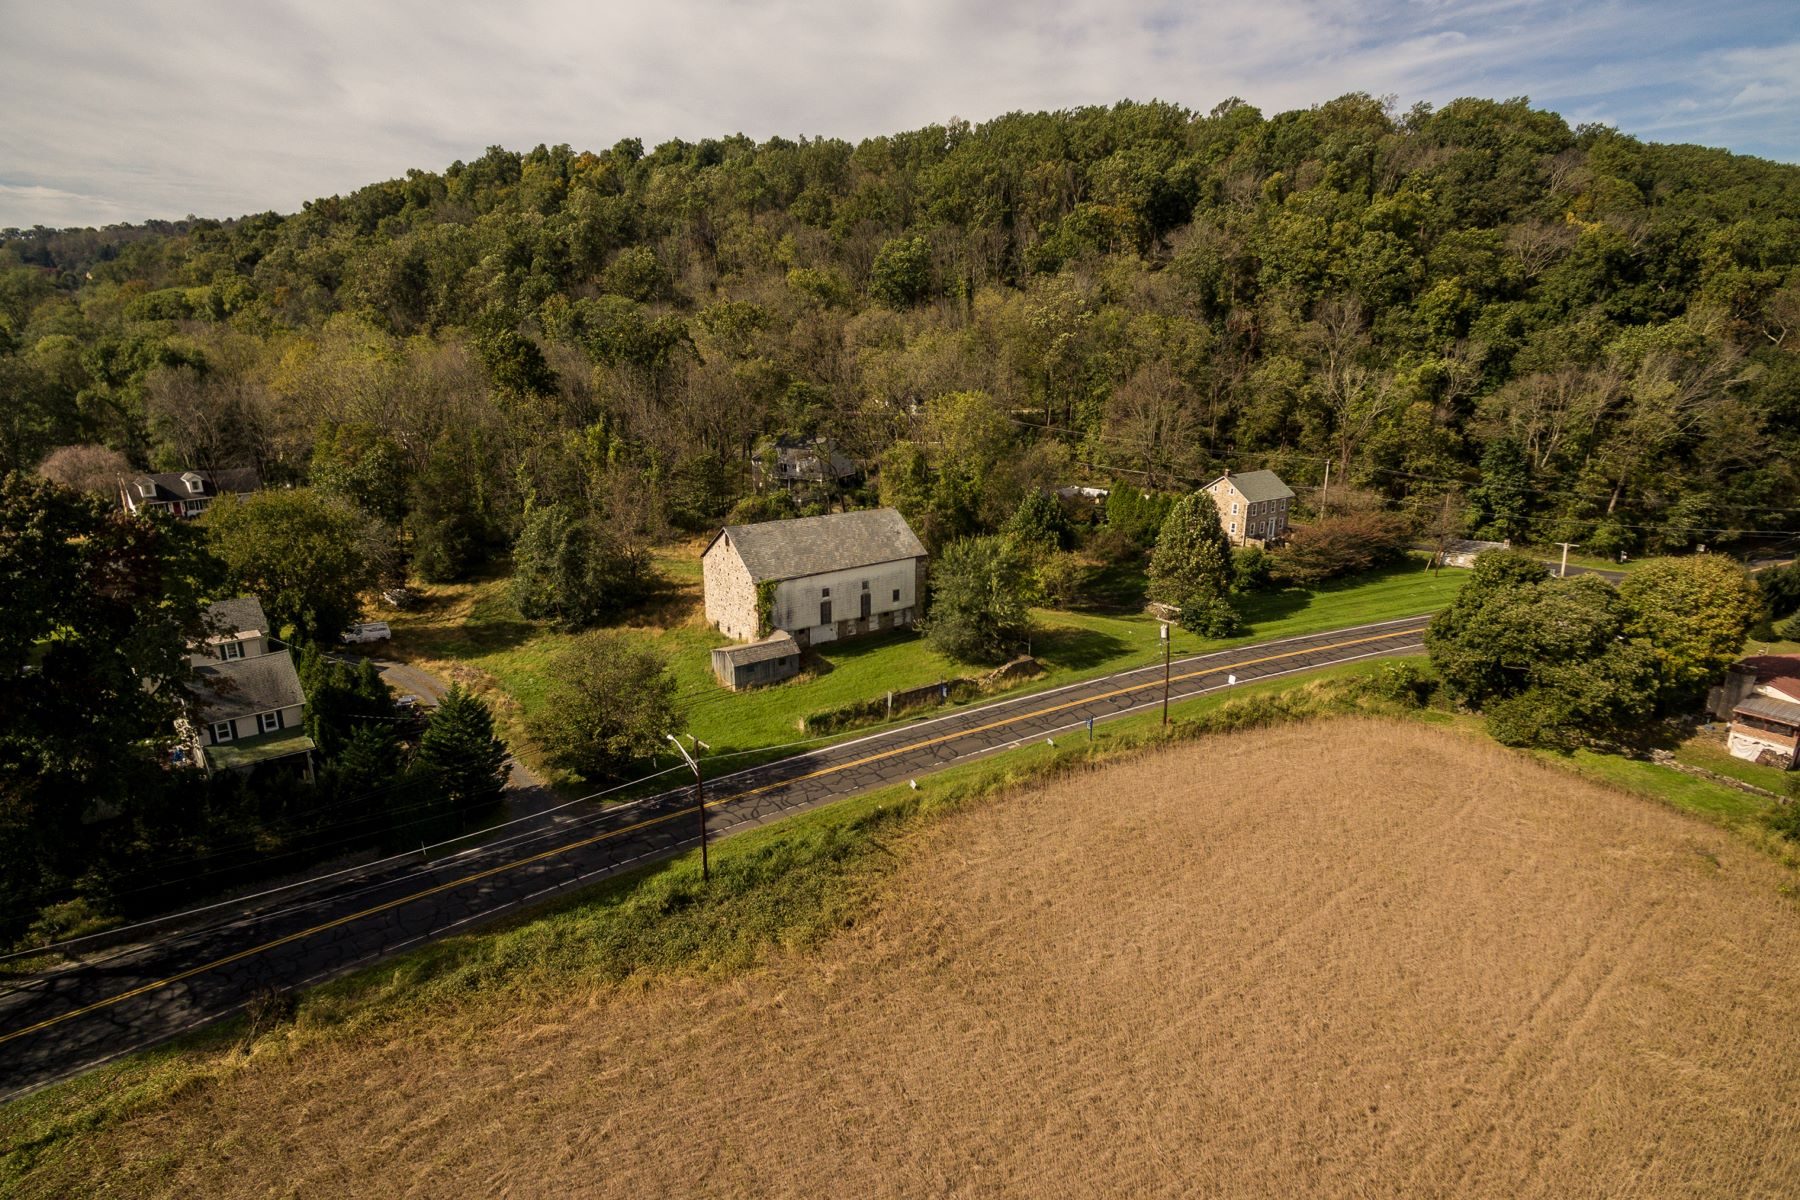 Land for Sale at LOT 5 EASTON RD Riegelsville, Pennsylvania 18077 United States